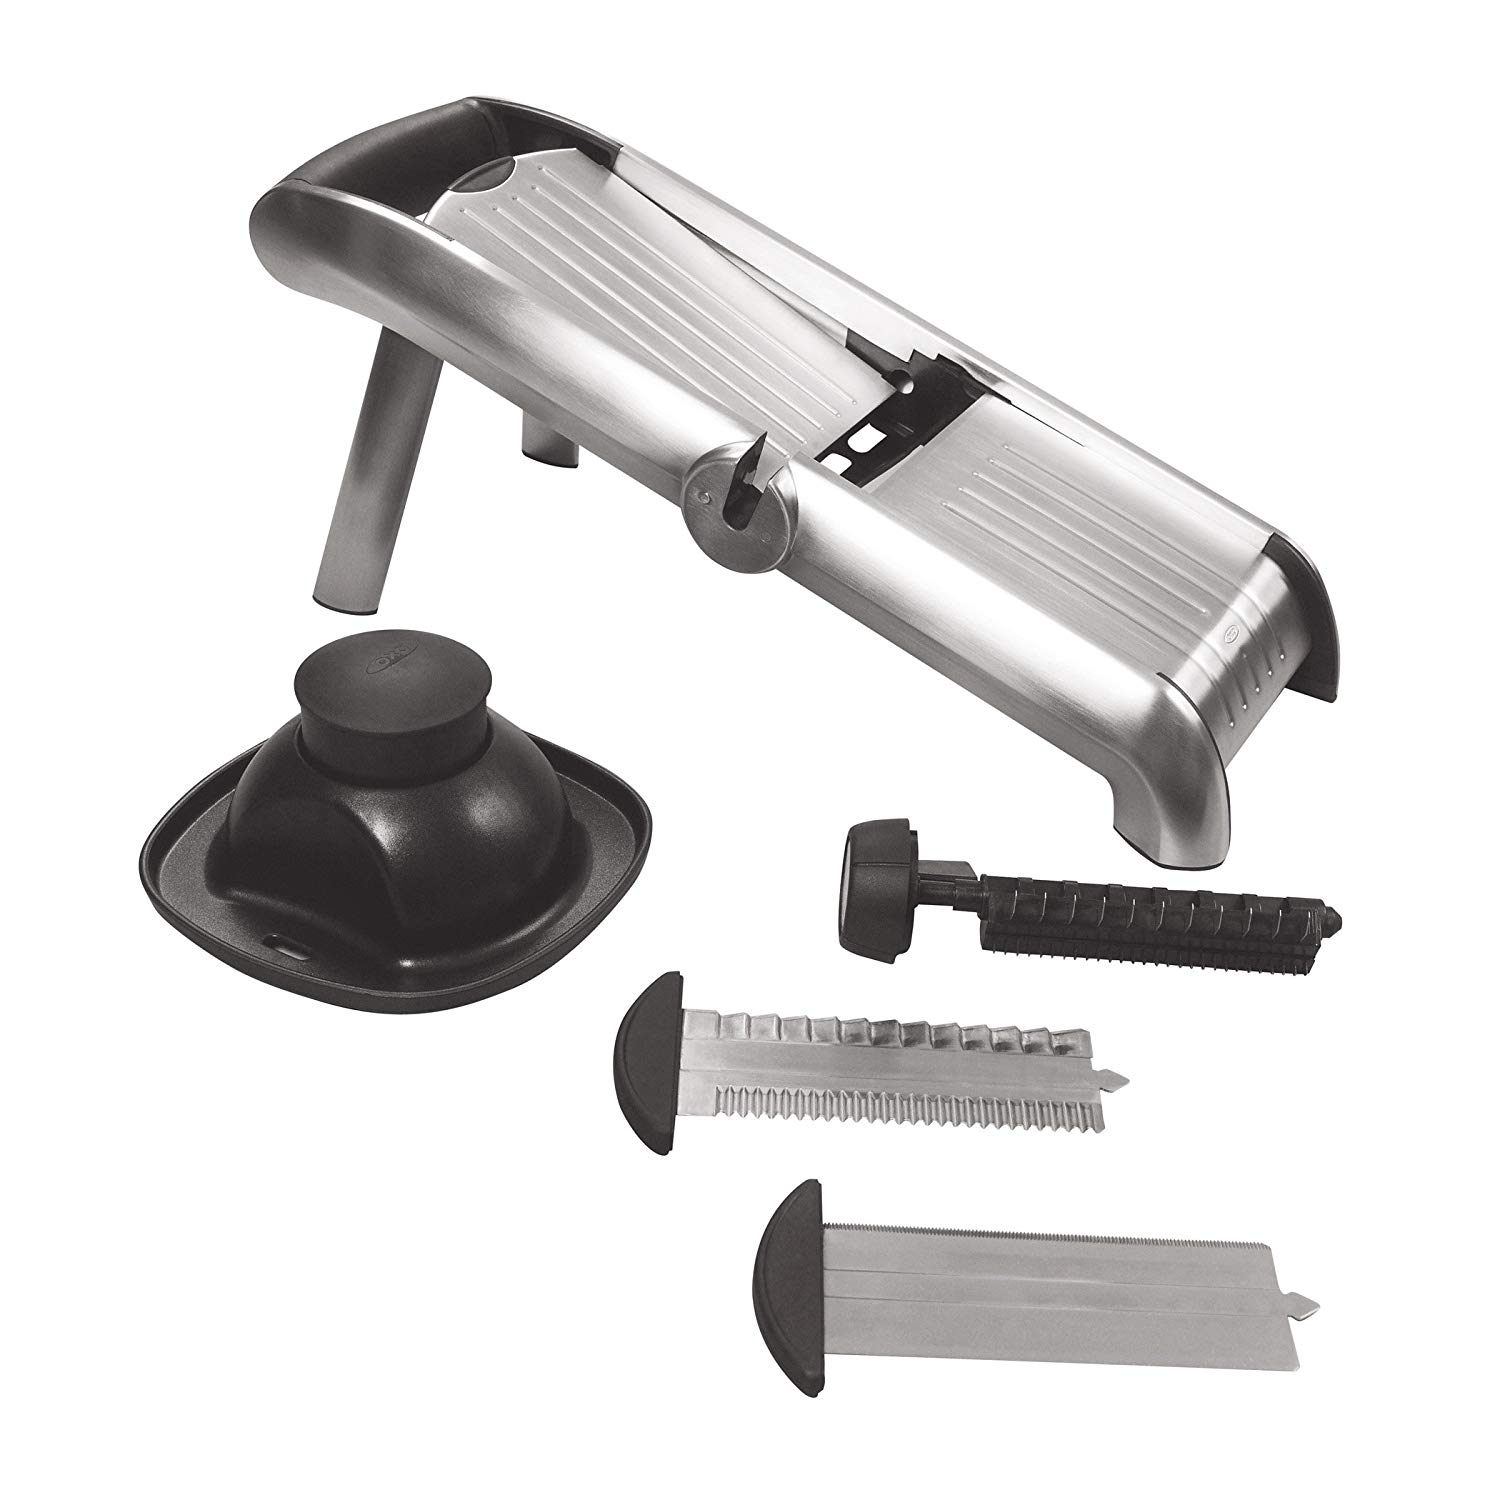 SteeL Chef's Mandoline Slicer -